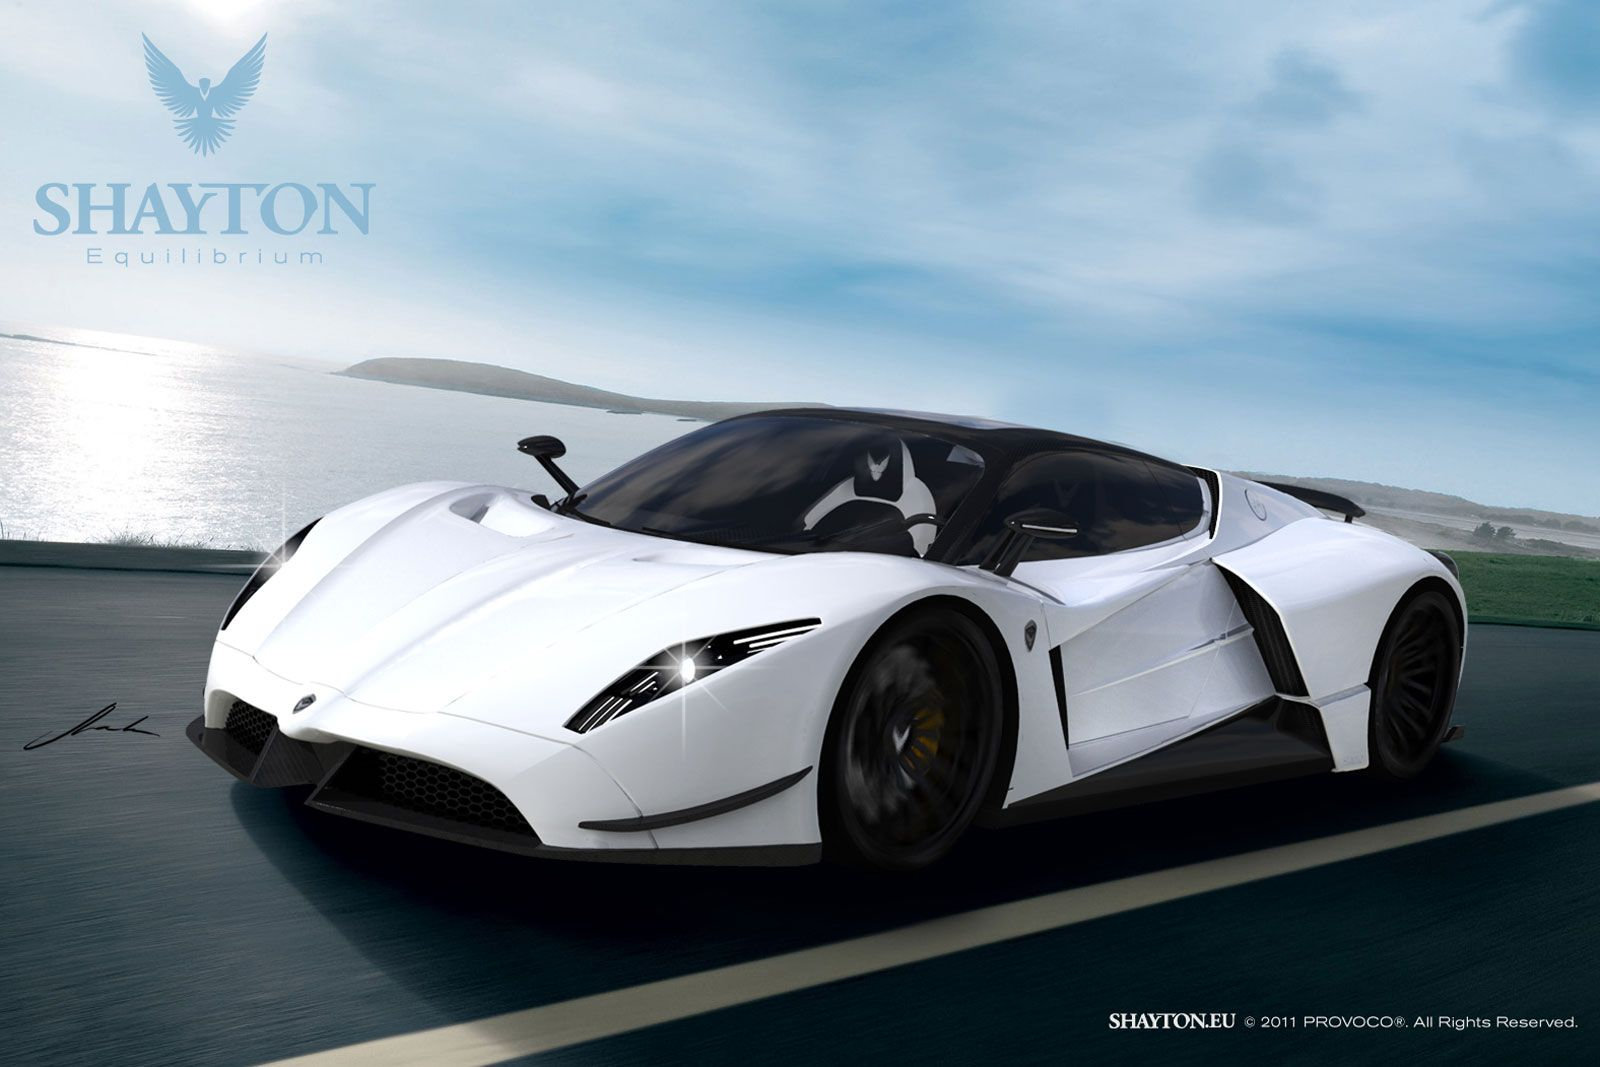 New Supercars Shayton Equilibrium Super Cars New Supercars New Cars